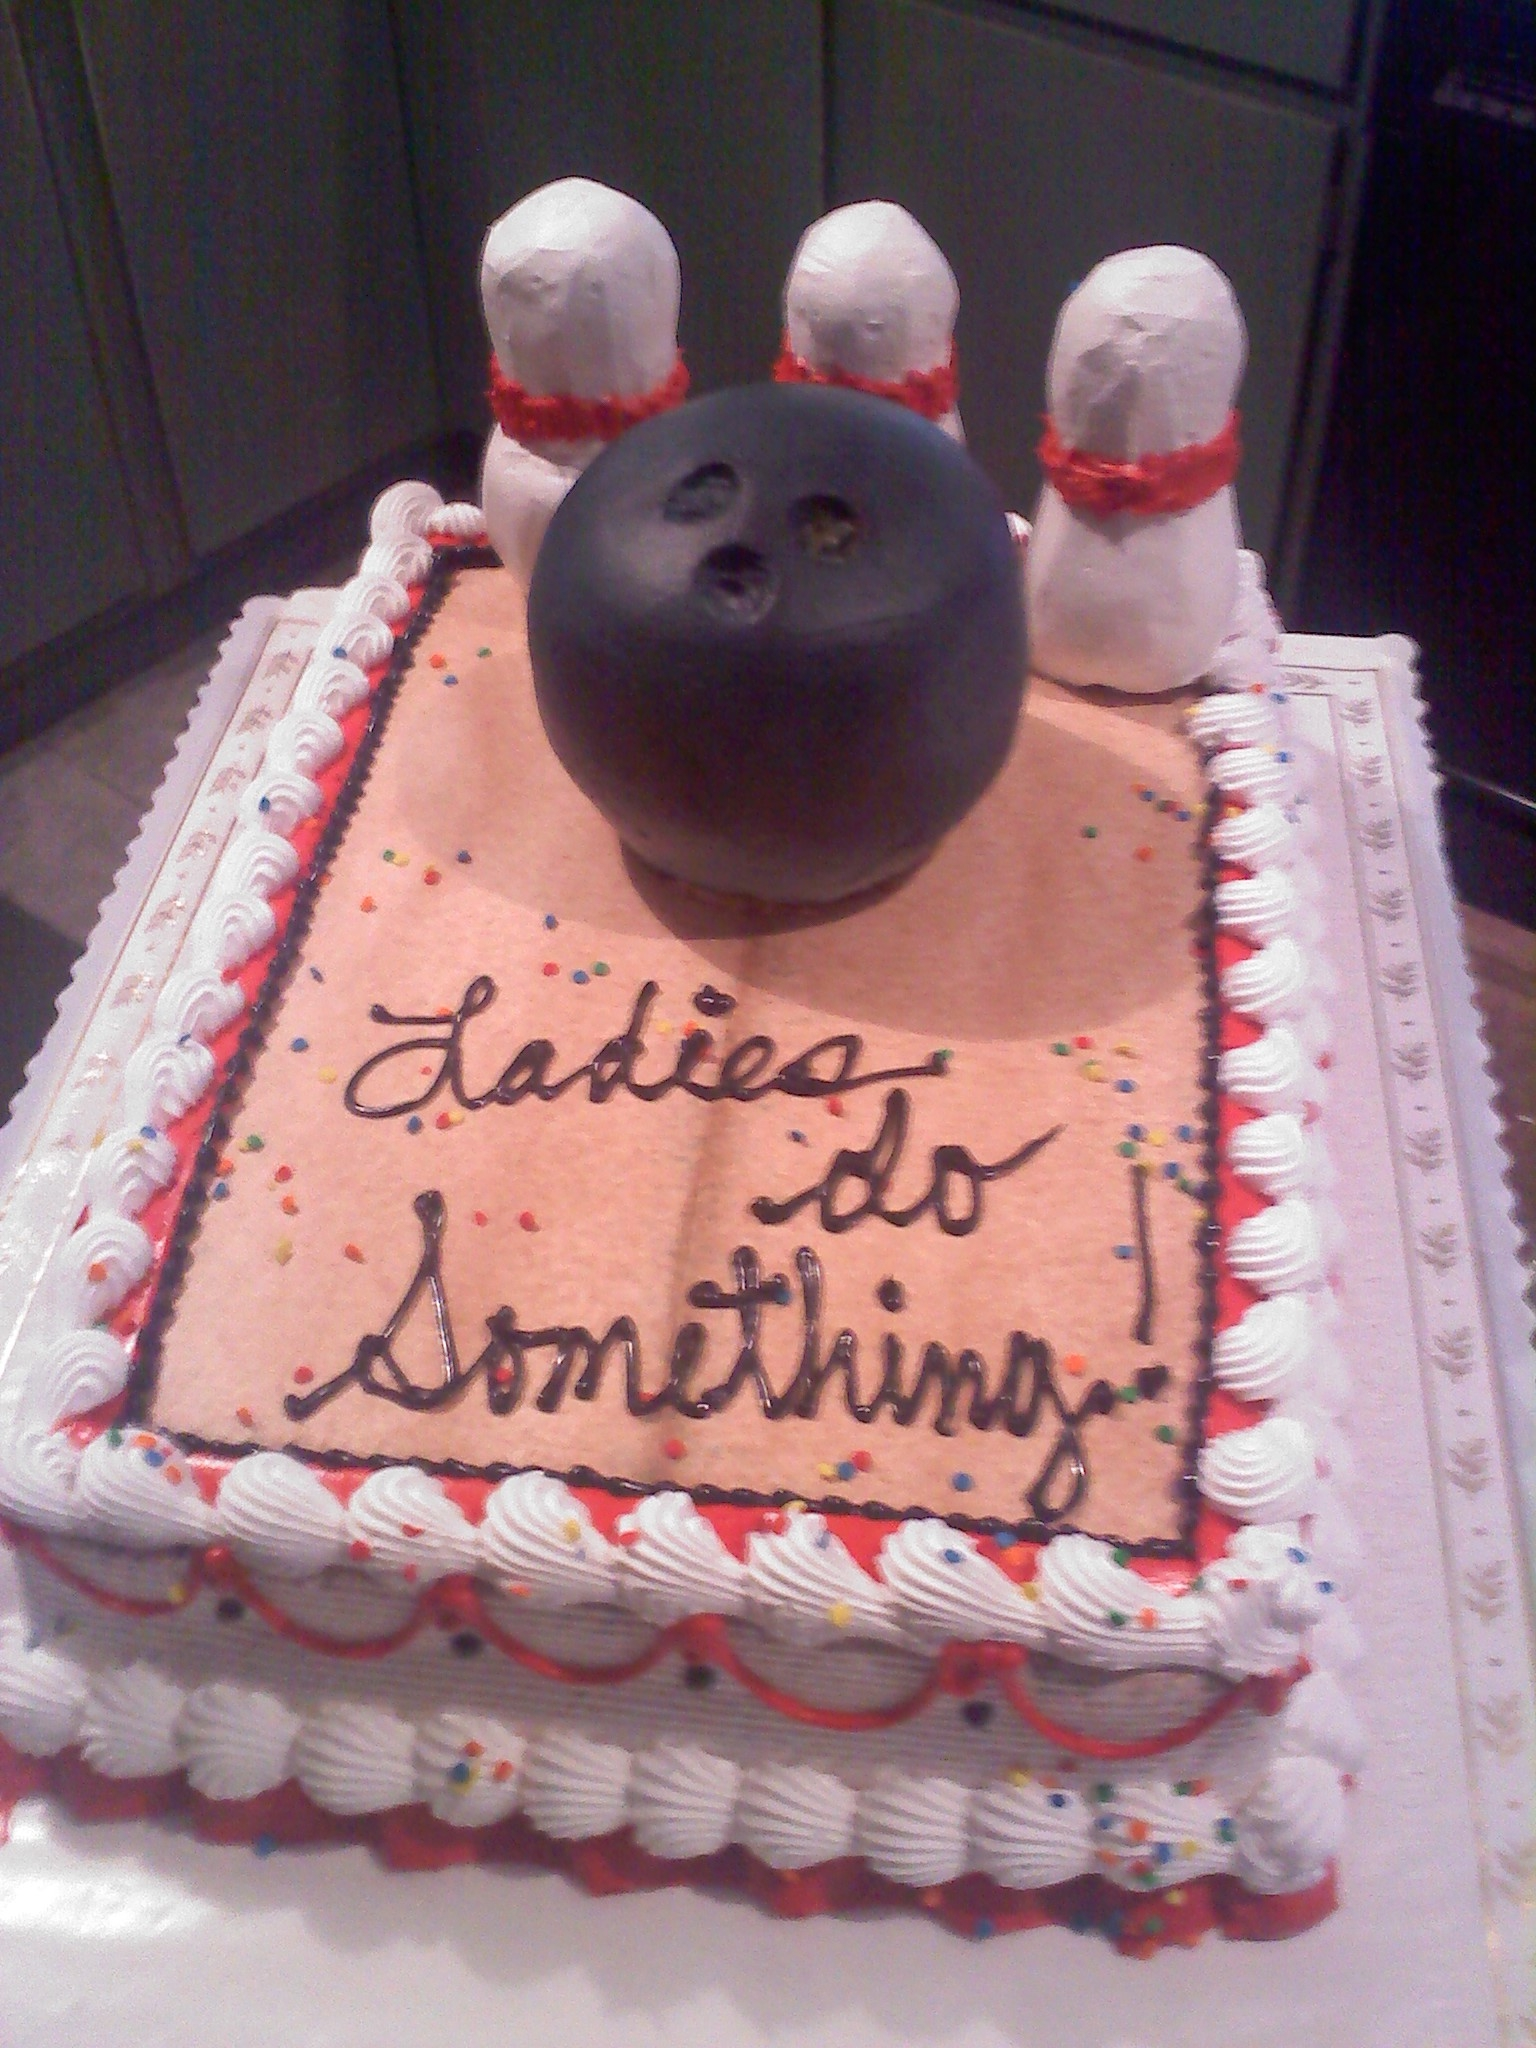 All covered in whip cream.  All edible including sculpted bowling ball cake.  My pins were made of twinkies and held dowm by a straw.  They didn't come out as I hoped but otherwise happy with it over all.